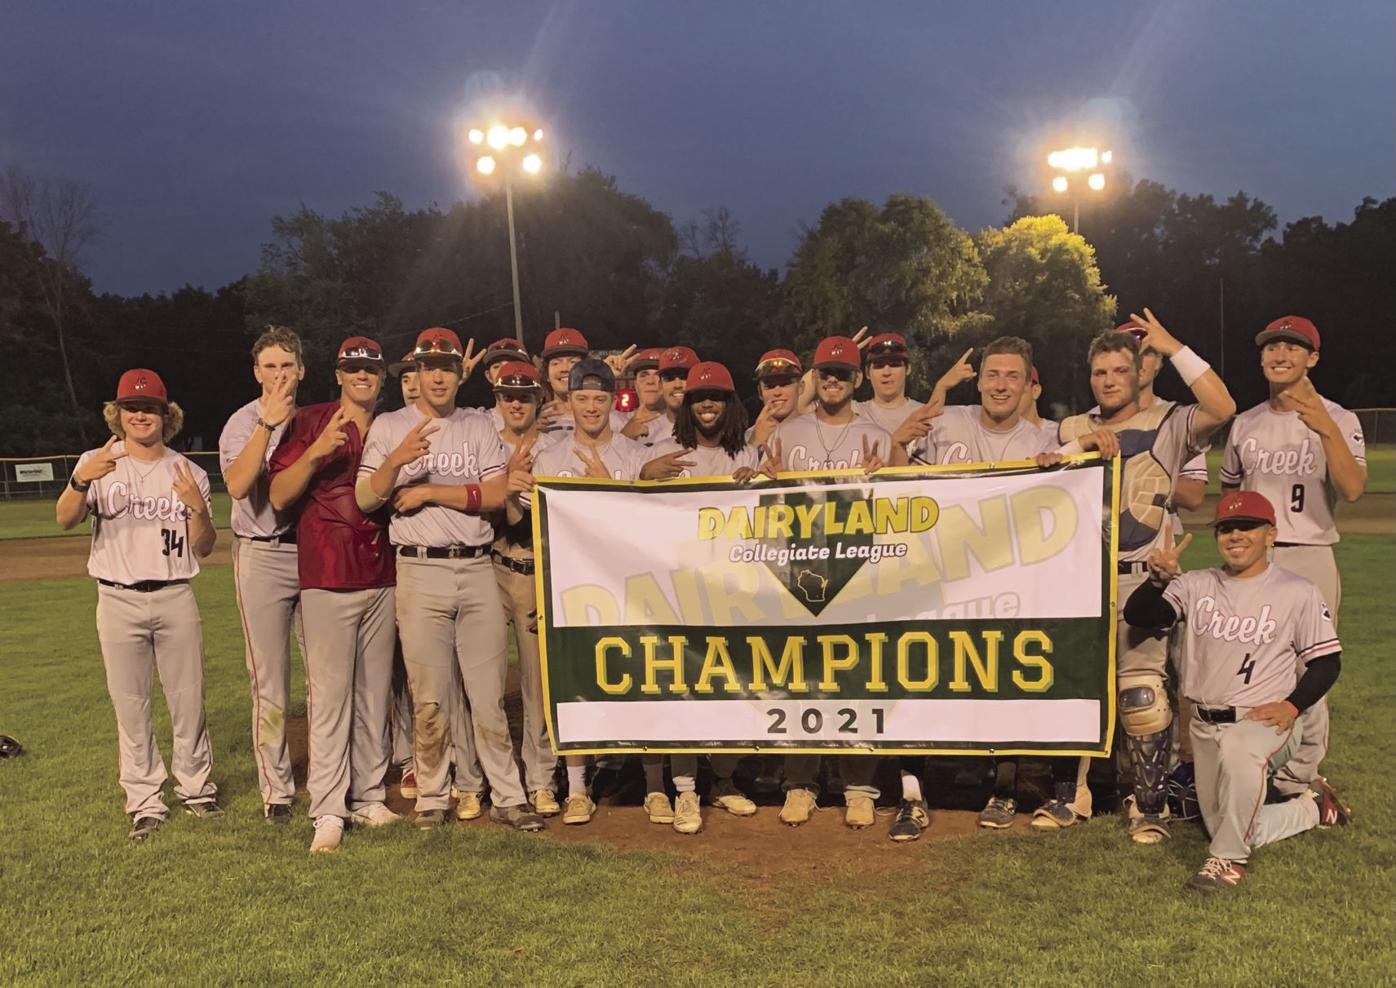 DCL Champions